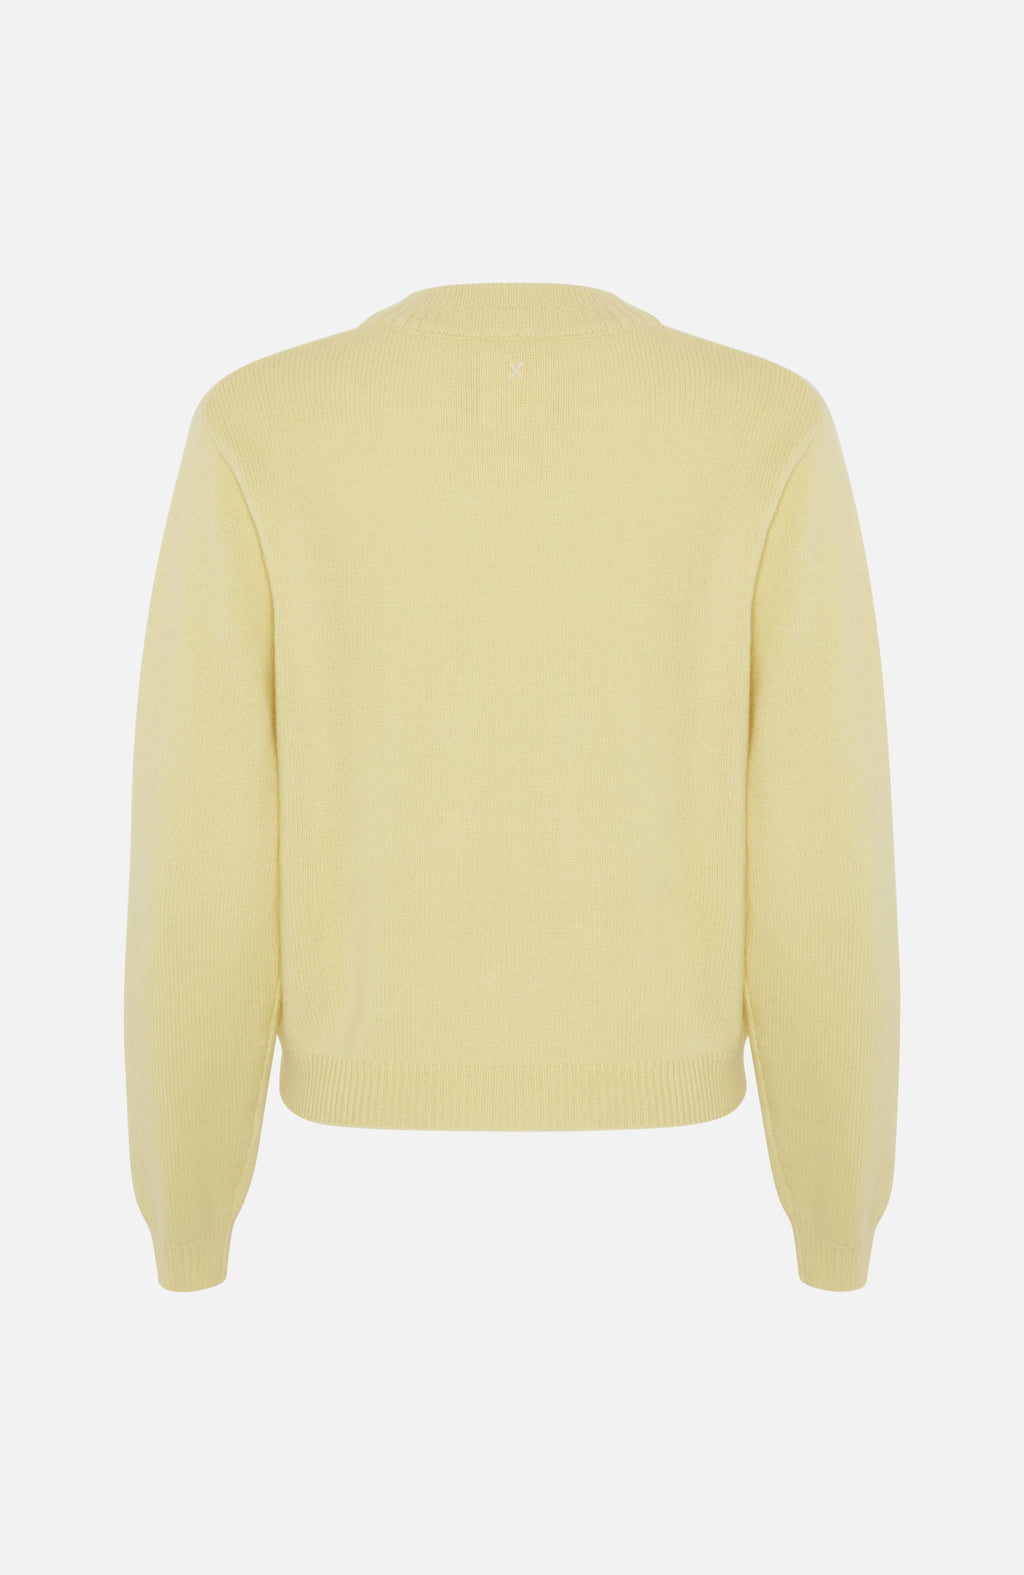 Republic Of Cashmere Crew Neck Yellow Sweater